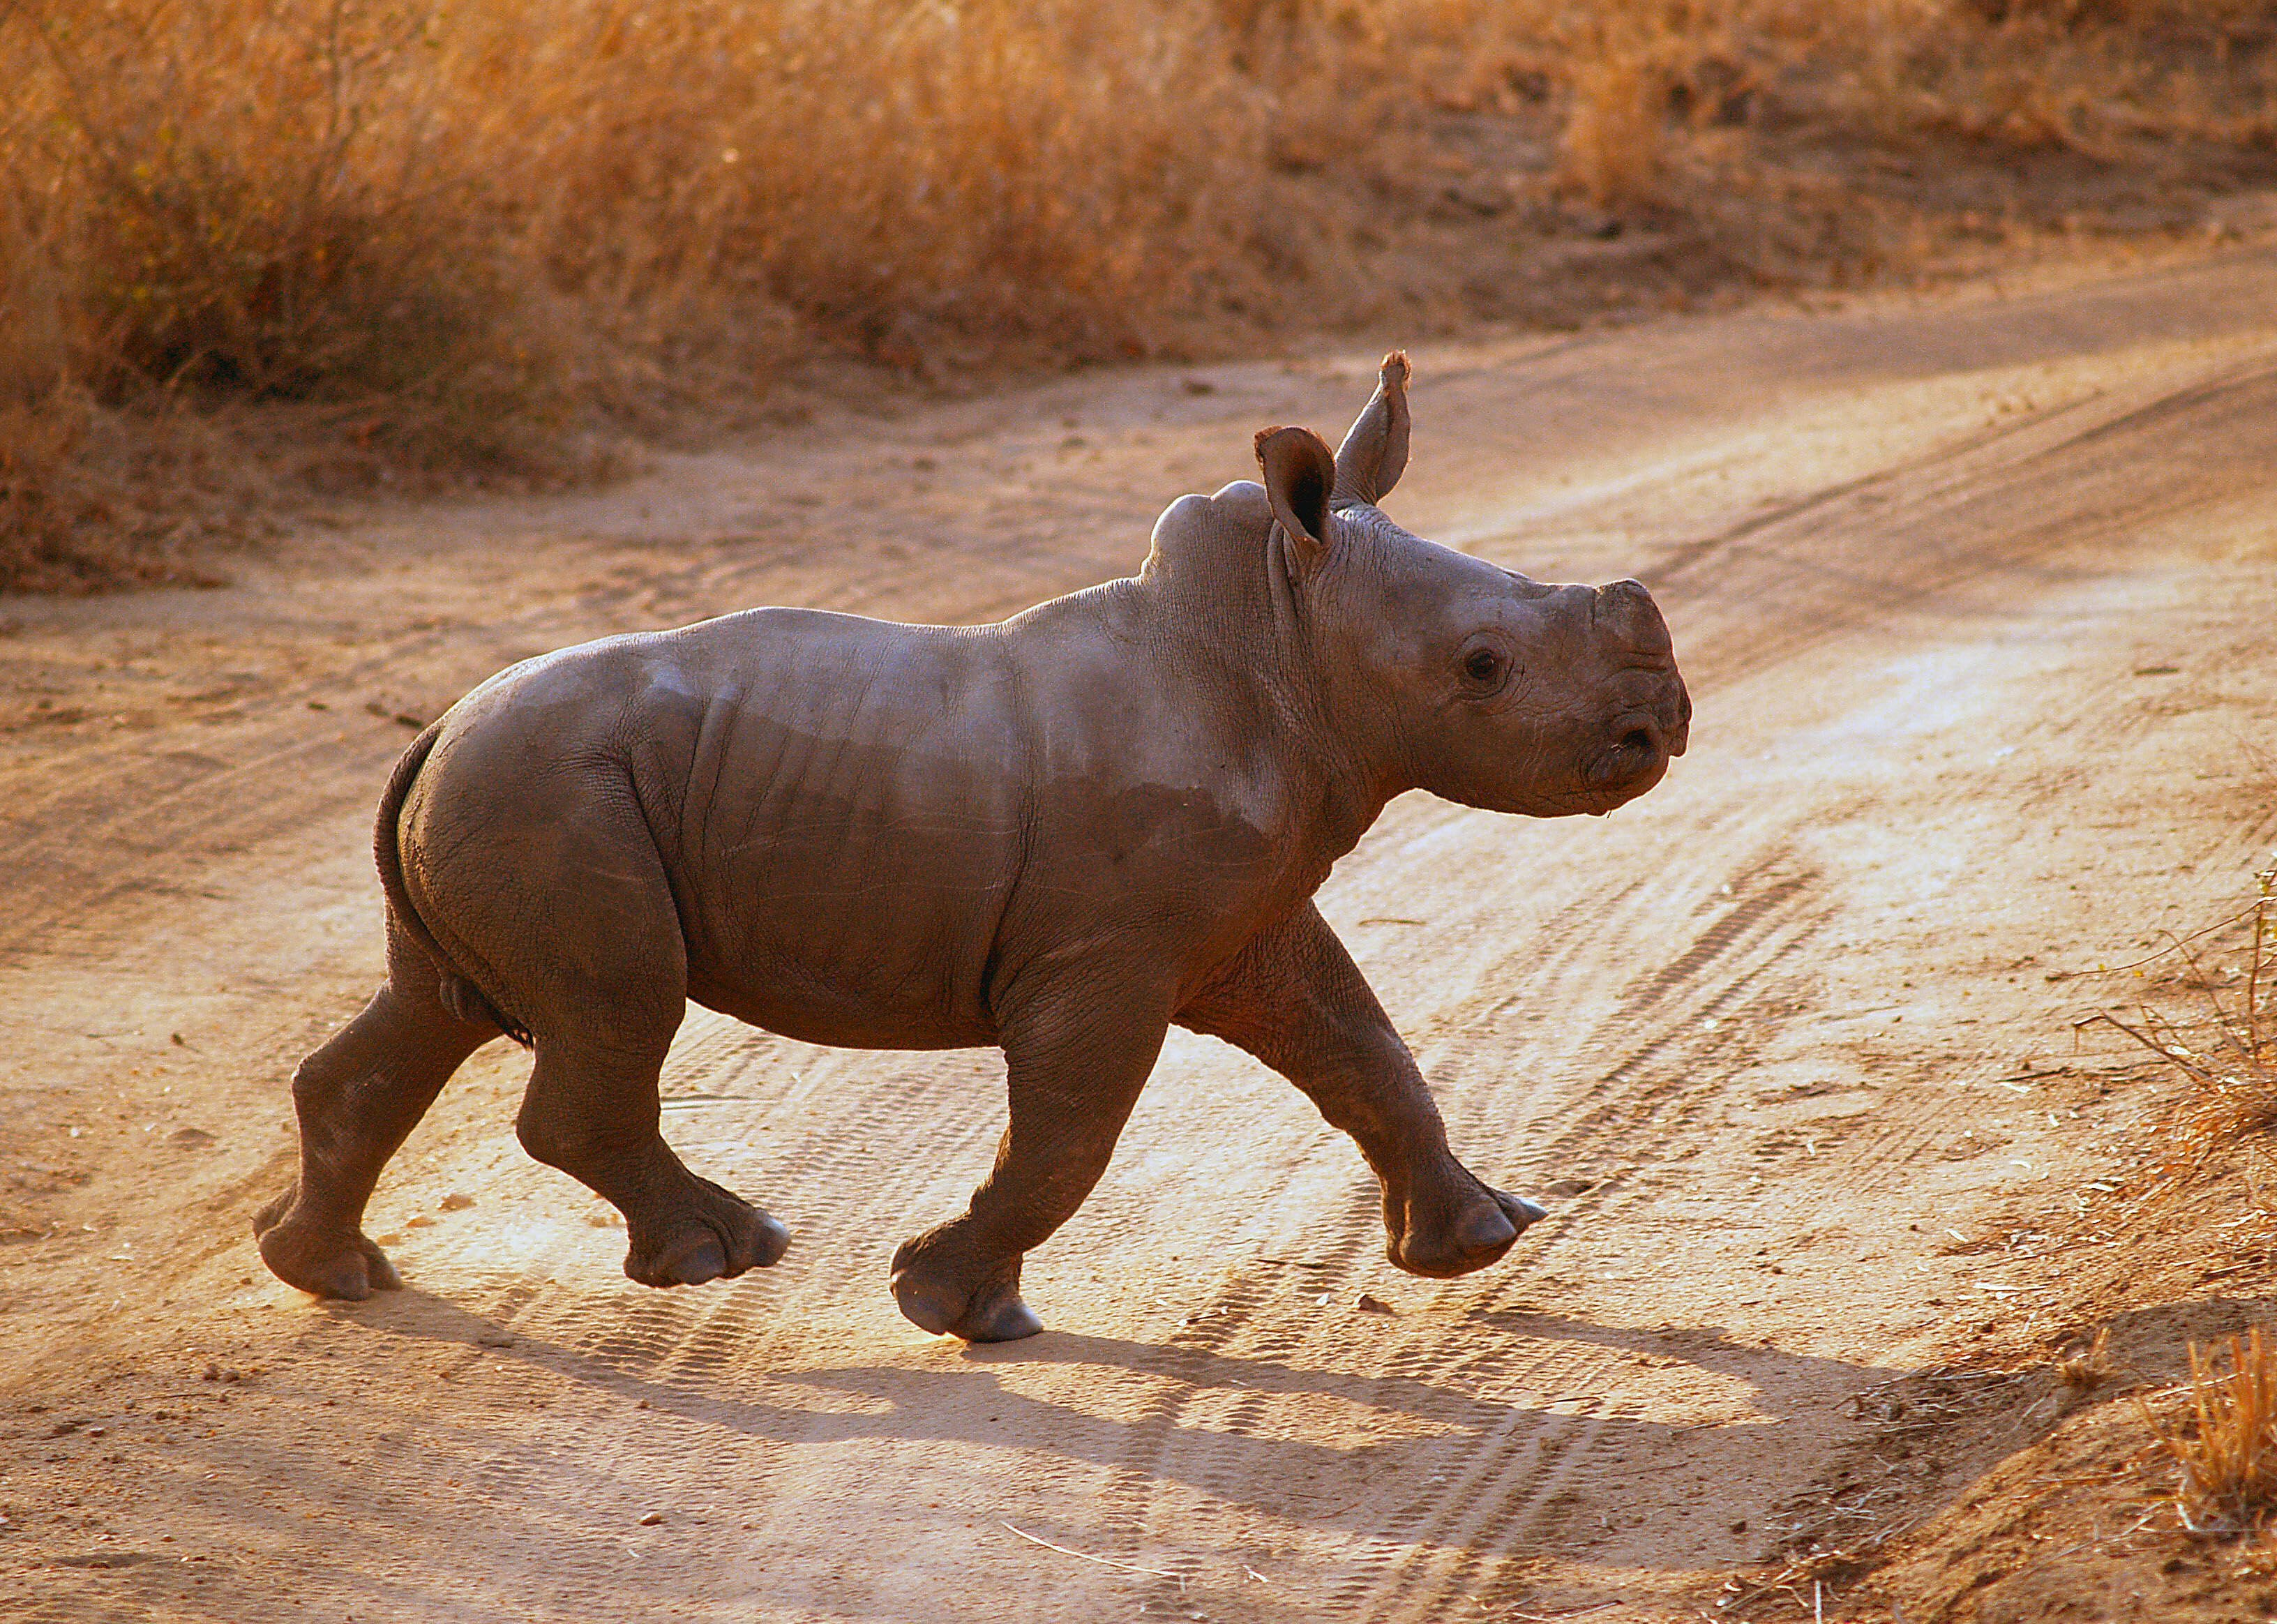 A baby rhino trots proudly behind his much larger and very